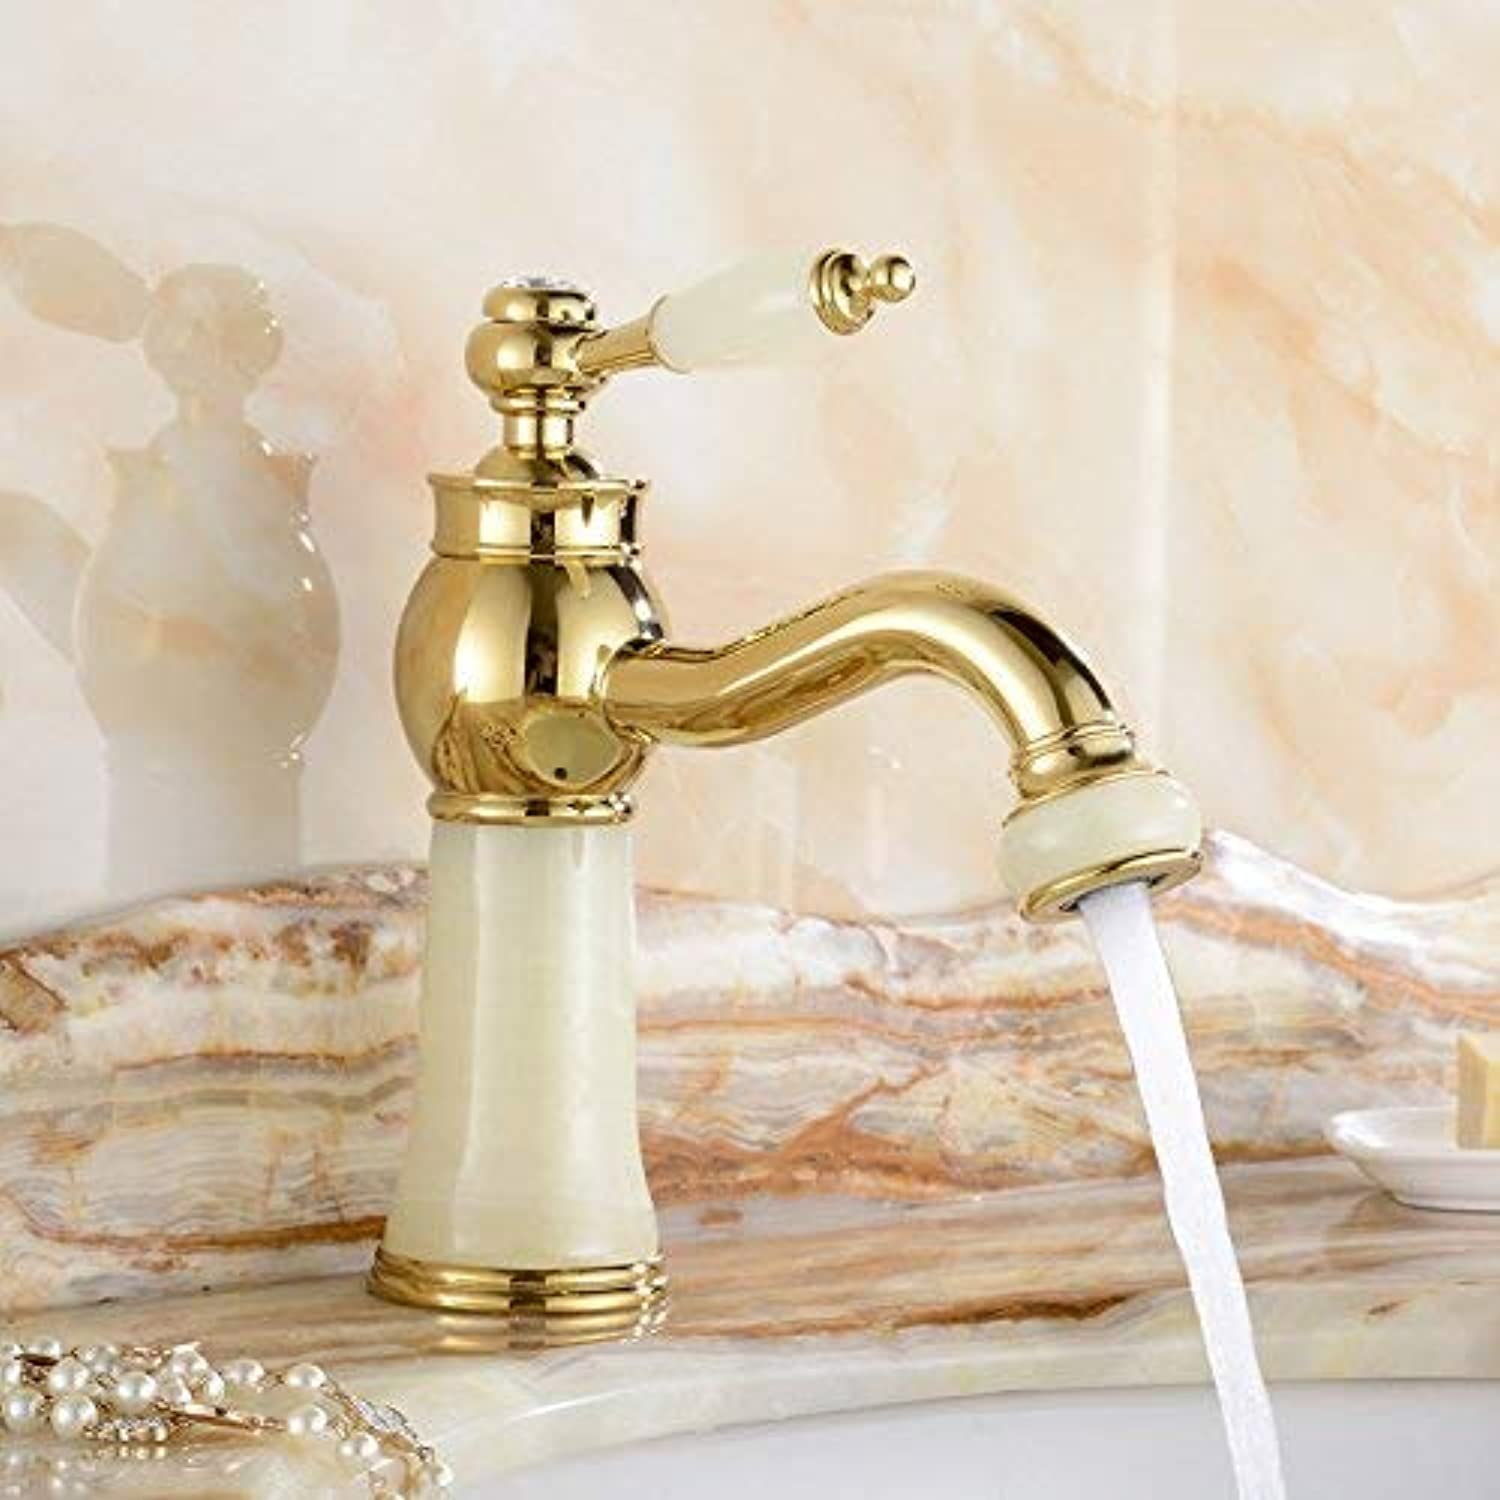 Oudan Basin Mixer Tap Bathroom Sink Faucet Euro-copper faucet hot and cold jade antique golden basin sink vanity table basin sinks retro, gold coffee faucet B (color   12)